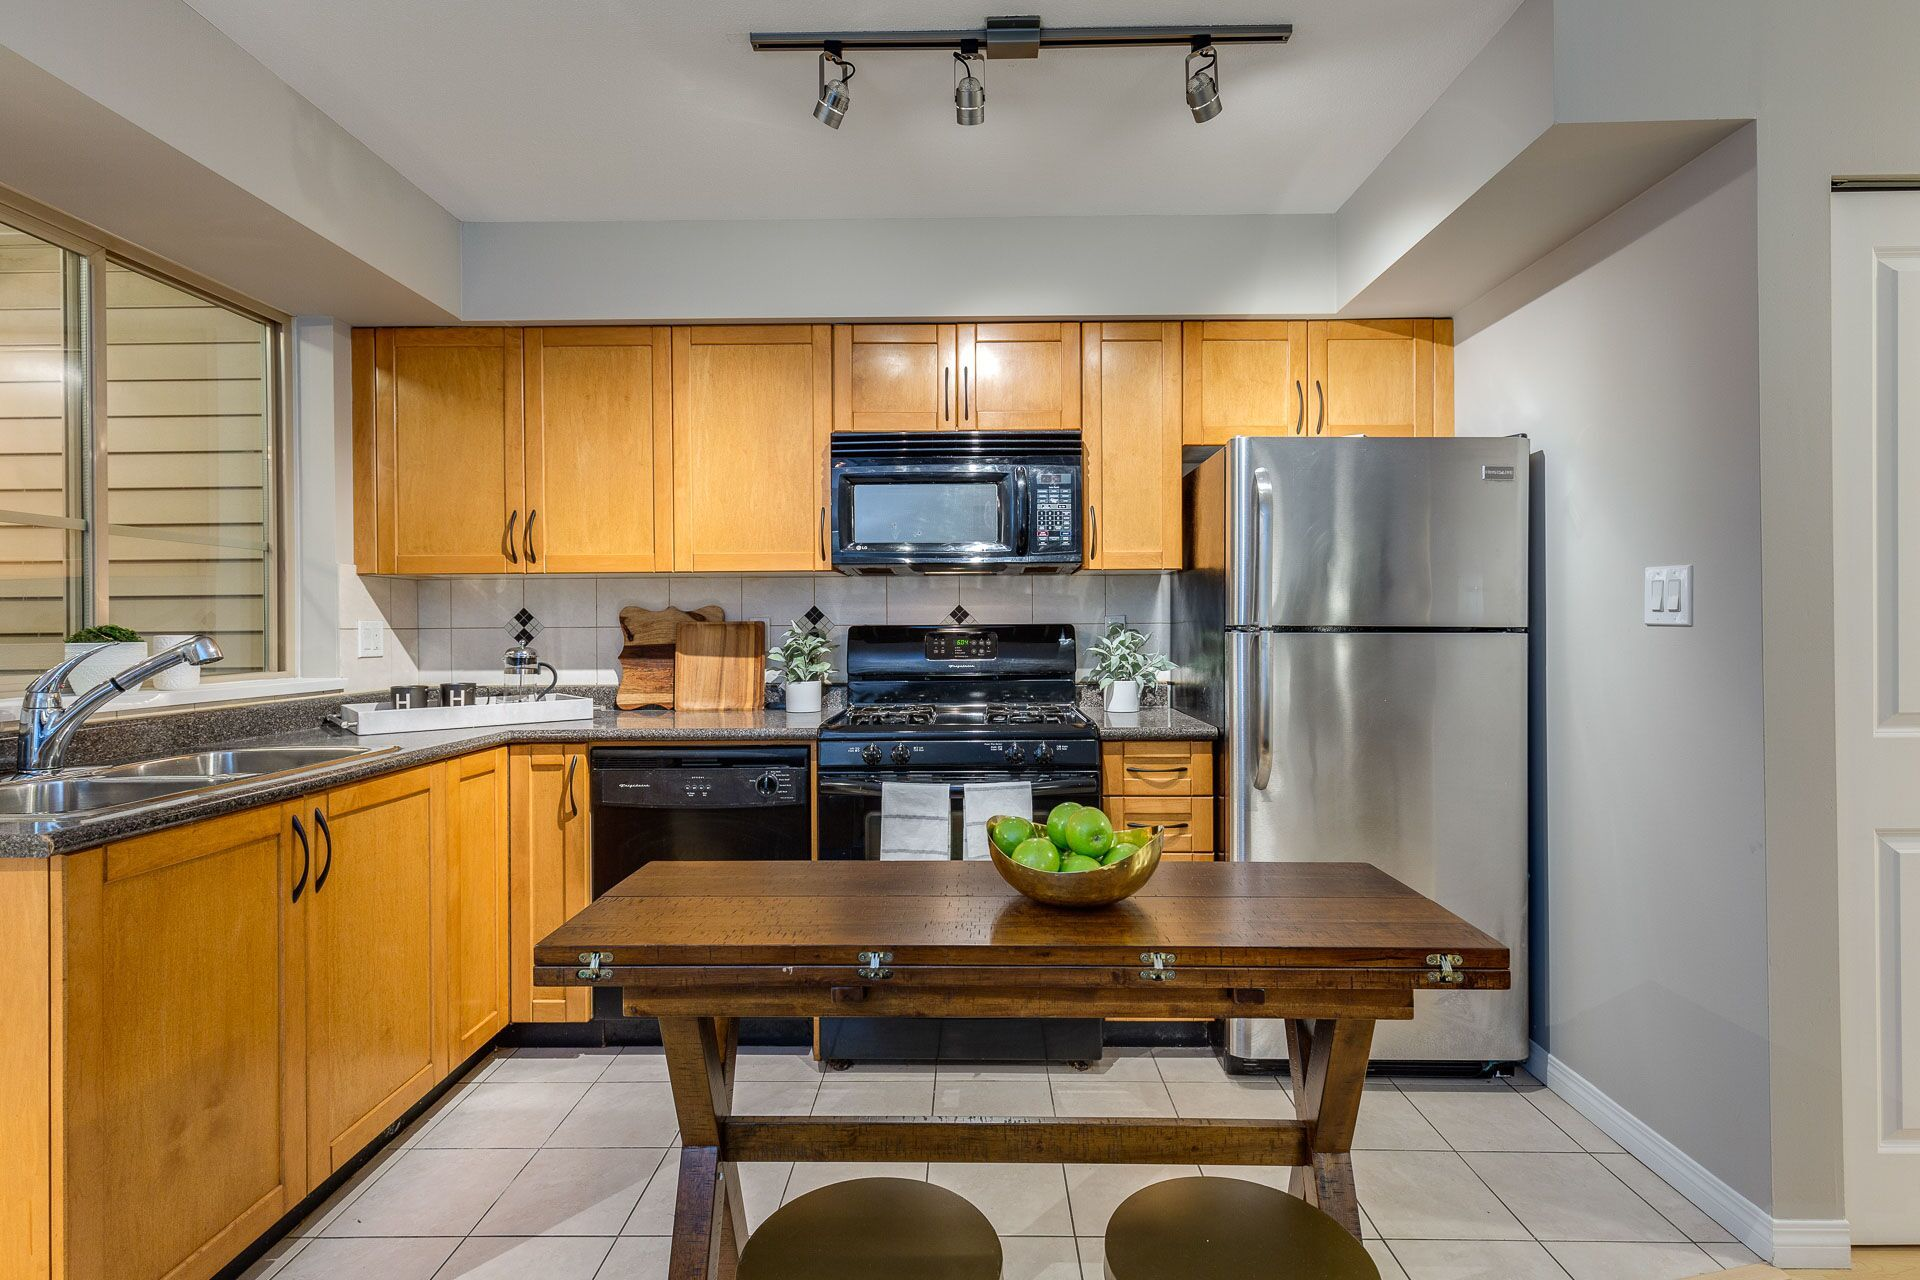 a7dhihaf at 104 - 2432 Welcher Avenue, Central Pt Coquitlam, Port Coquitlam